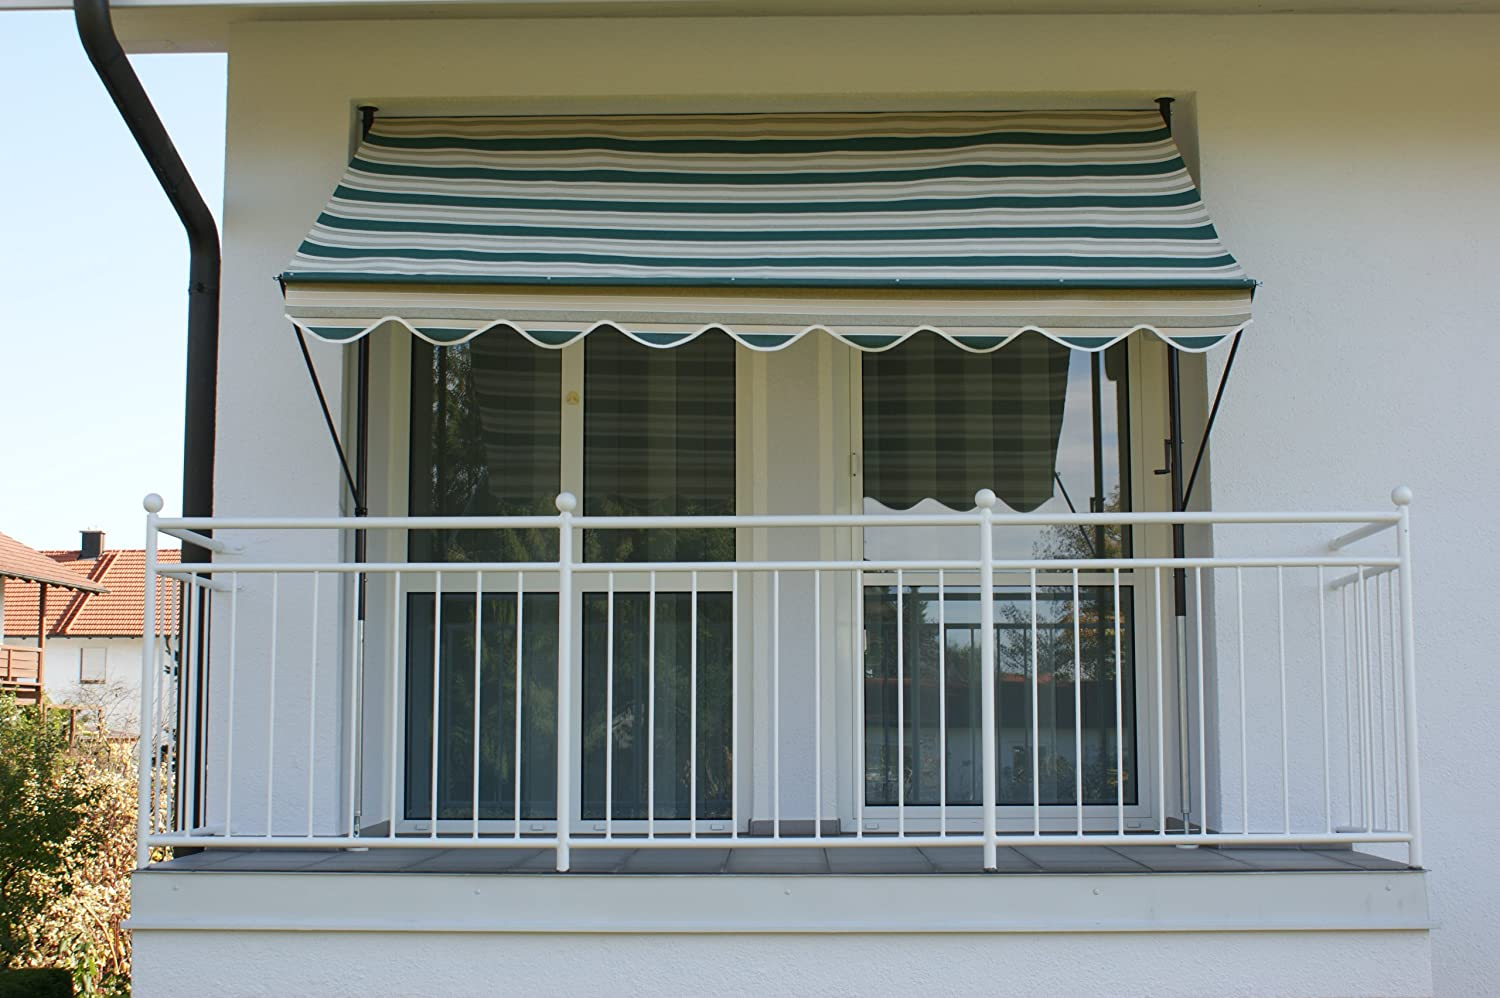 Green 250 cm 8700 Angerer Clamp Awning No